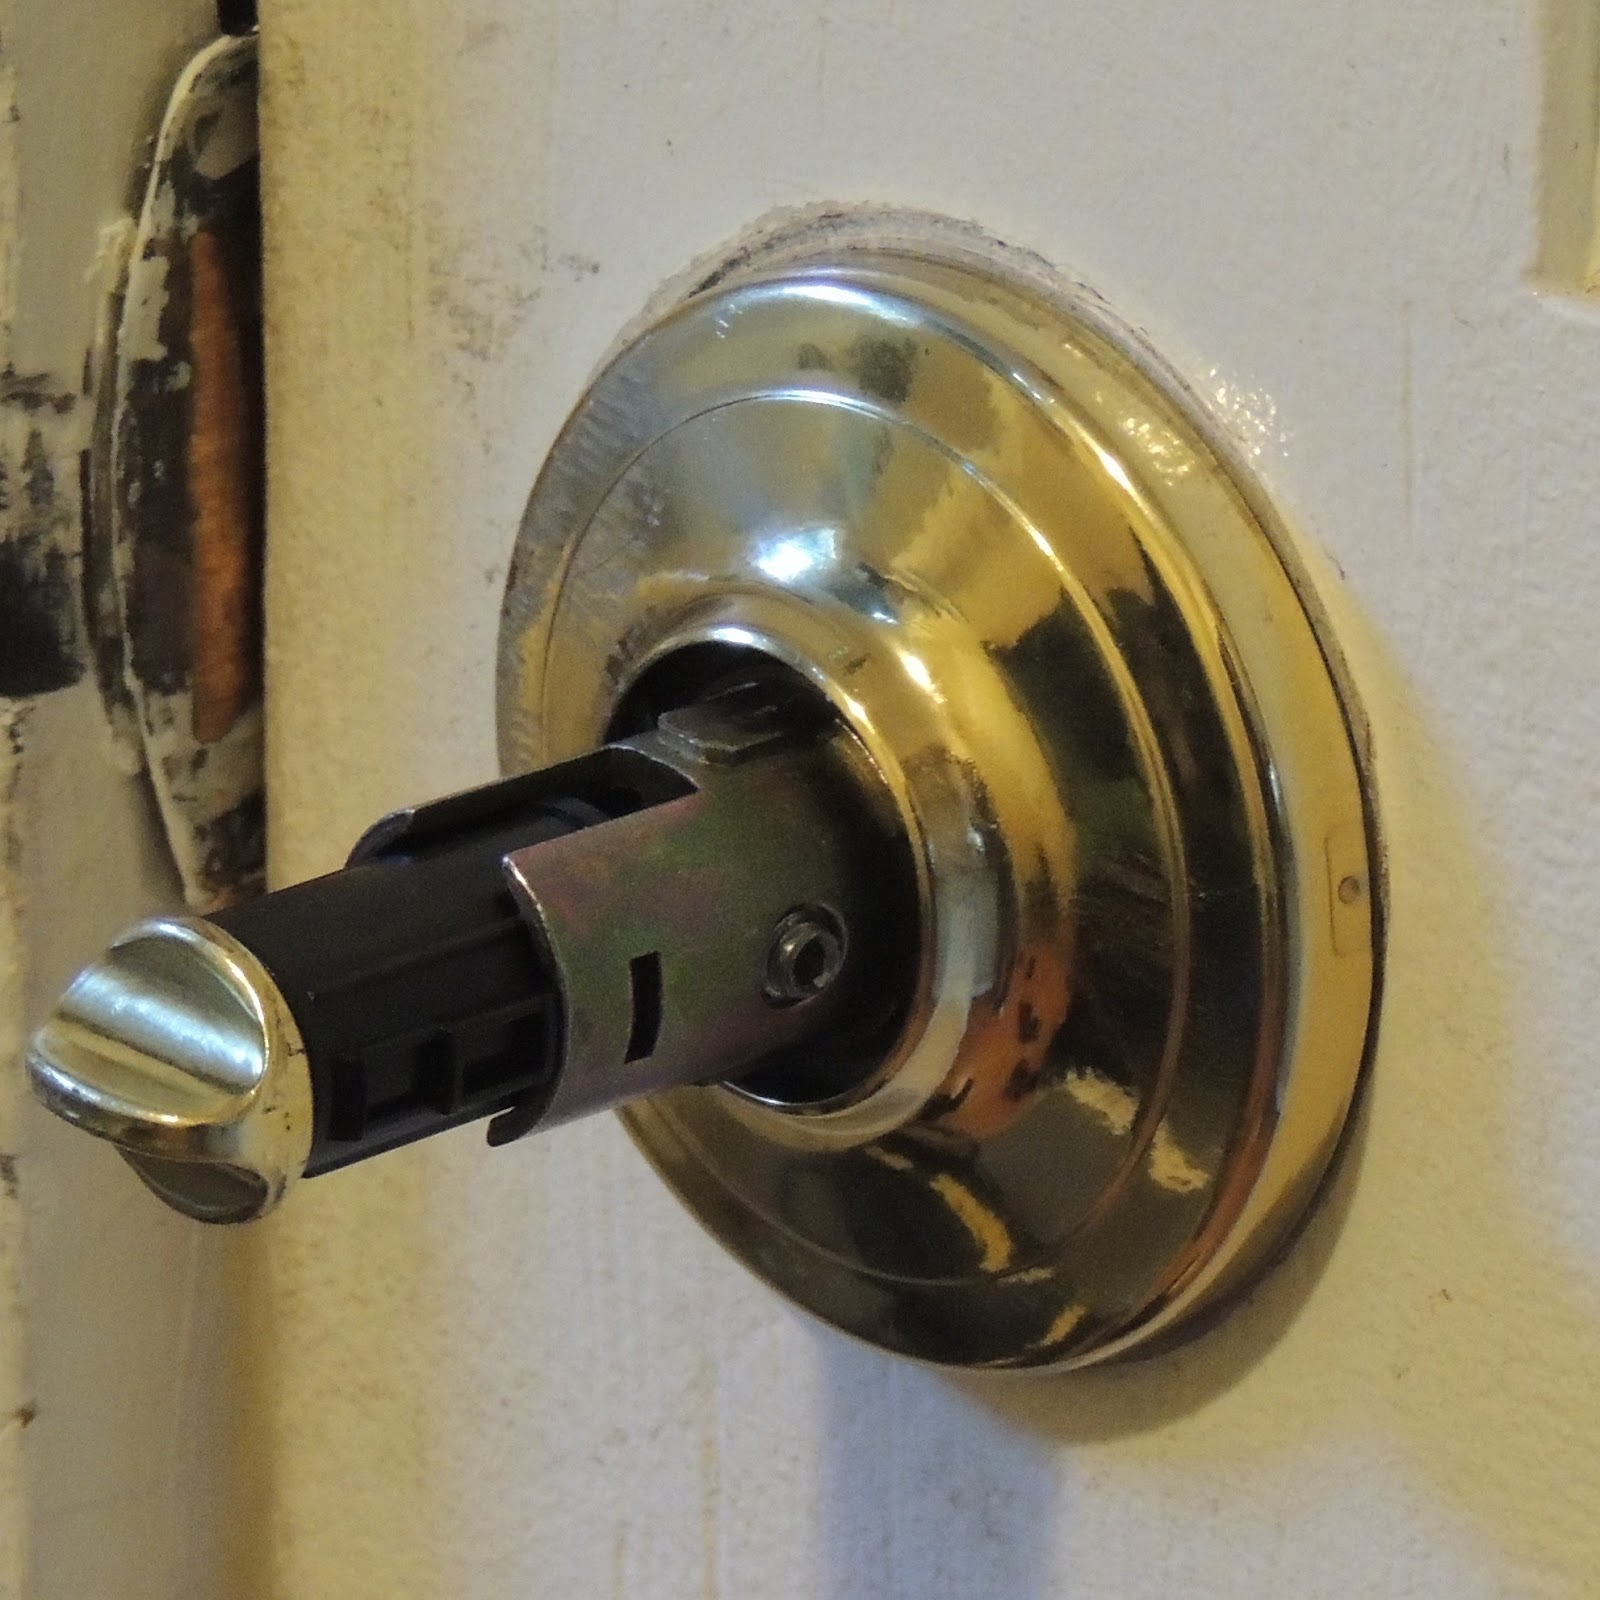 medium resolution of interior post of lock showing head of set screw that is screwed out to hold handle